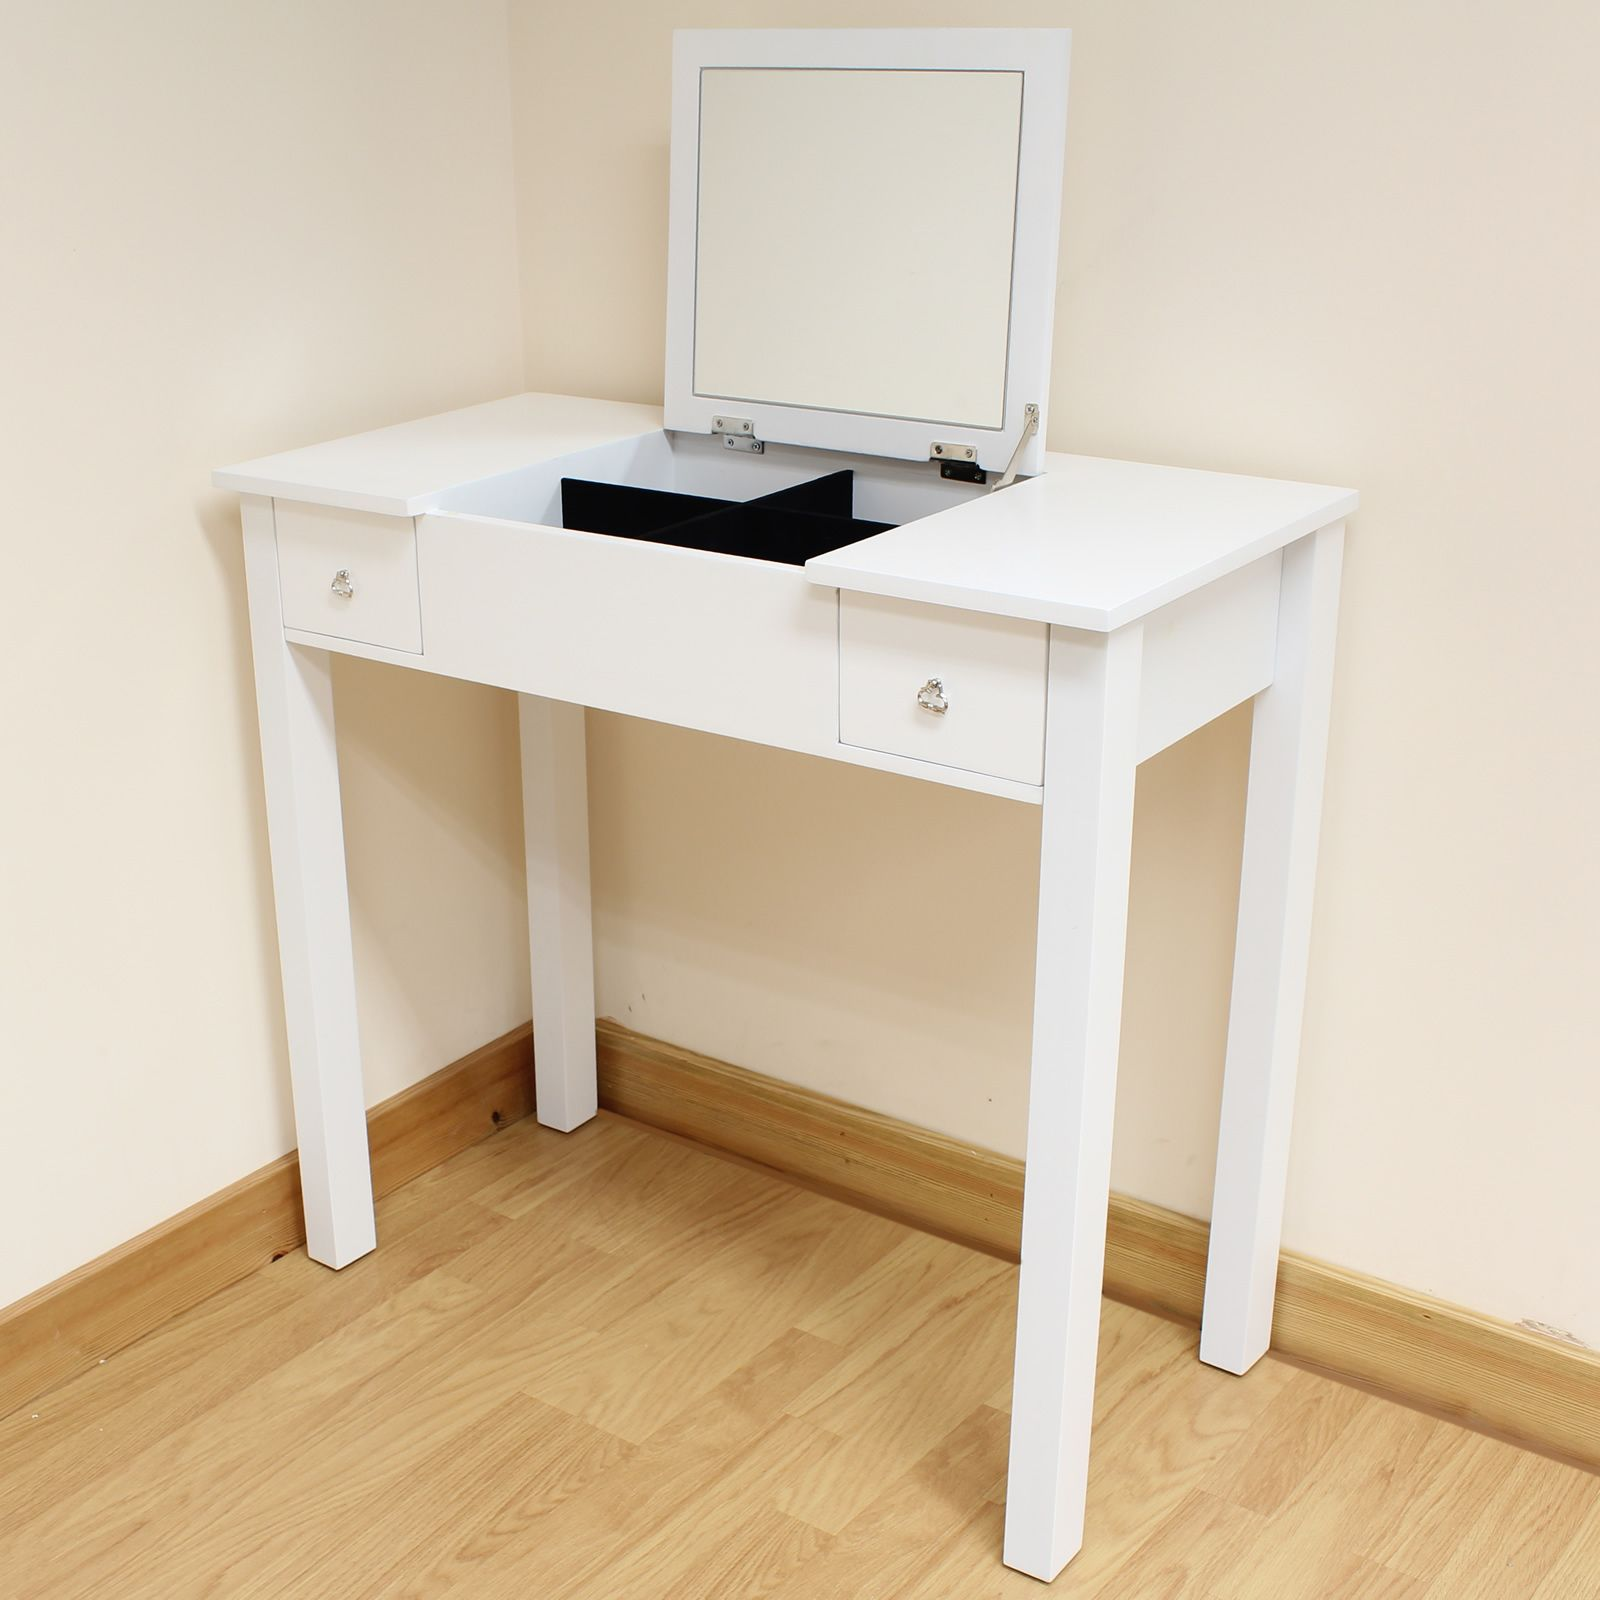 Wooden Make Up Table Vanity With A Fold Down Mirror Room Bedroom Vanity Make Up